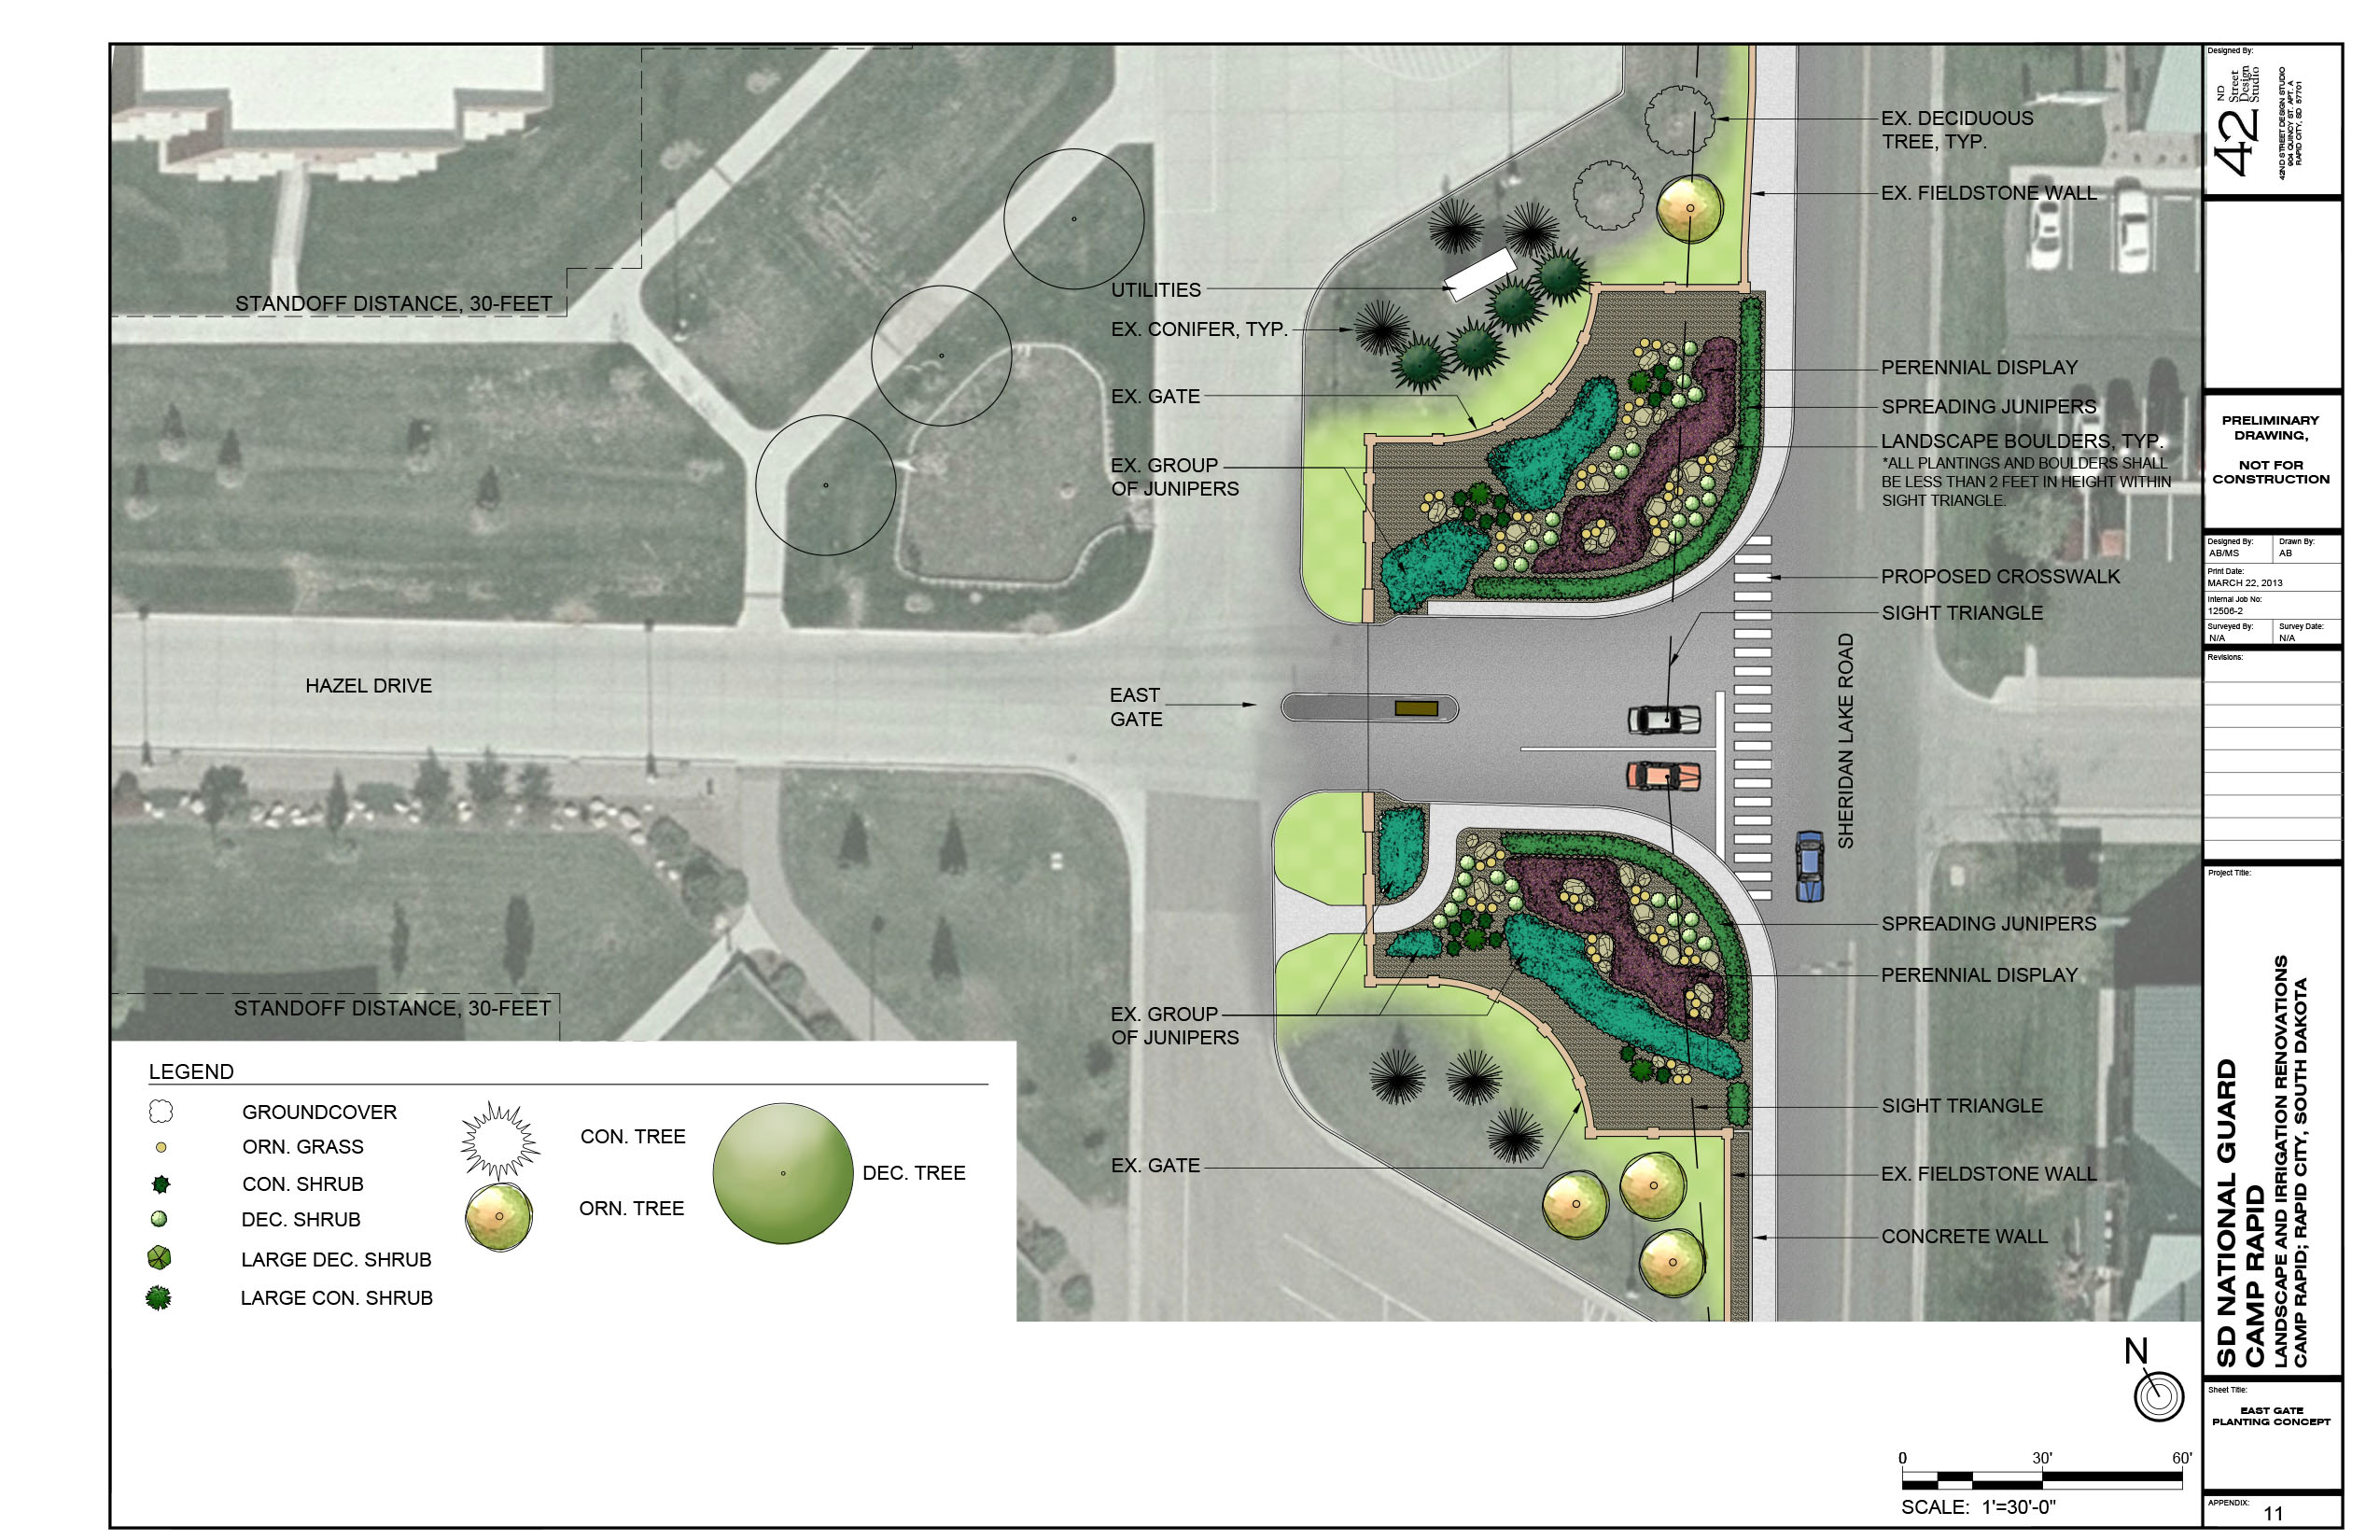 East Gate Planting Concept